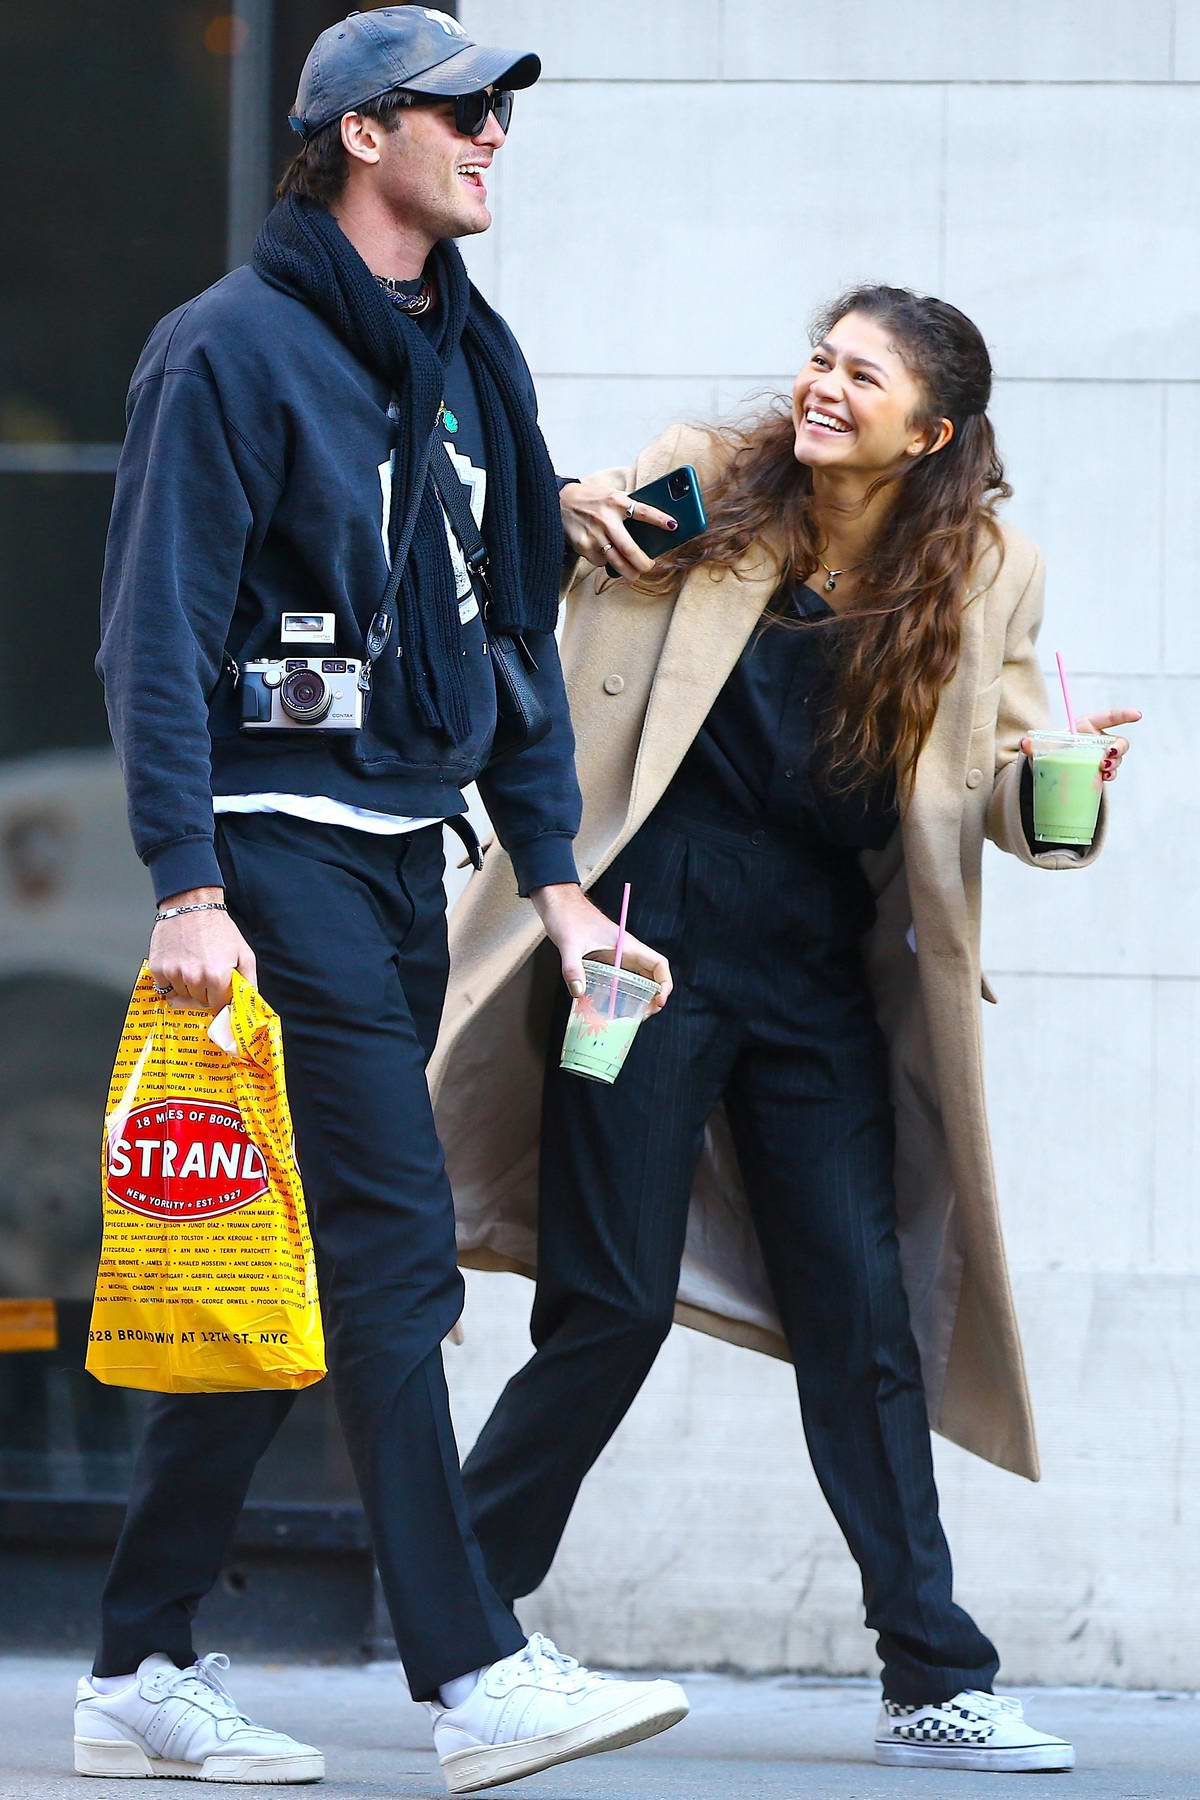 Zendaya and Jacob Elordi enjoy a fun day while out in Soho, New York City